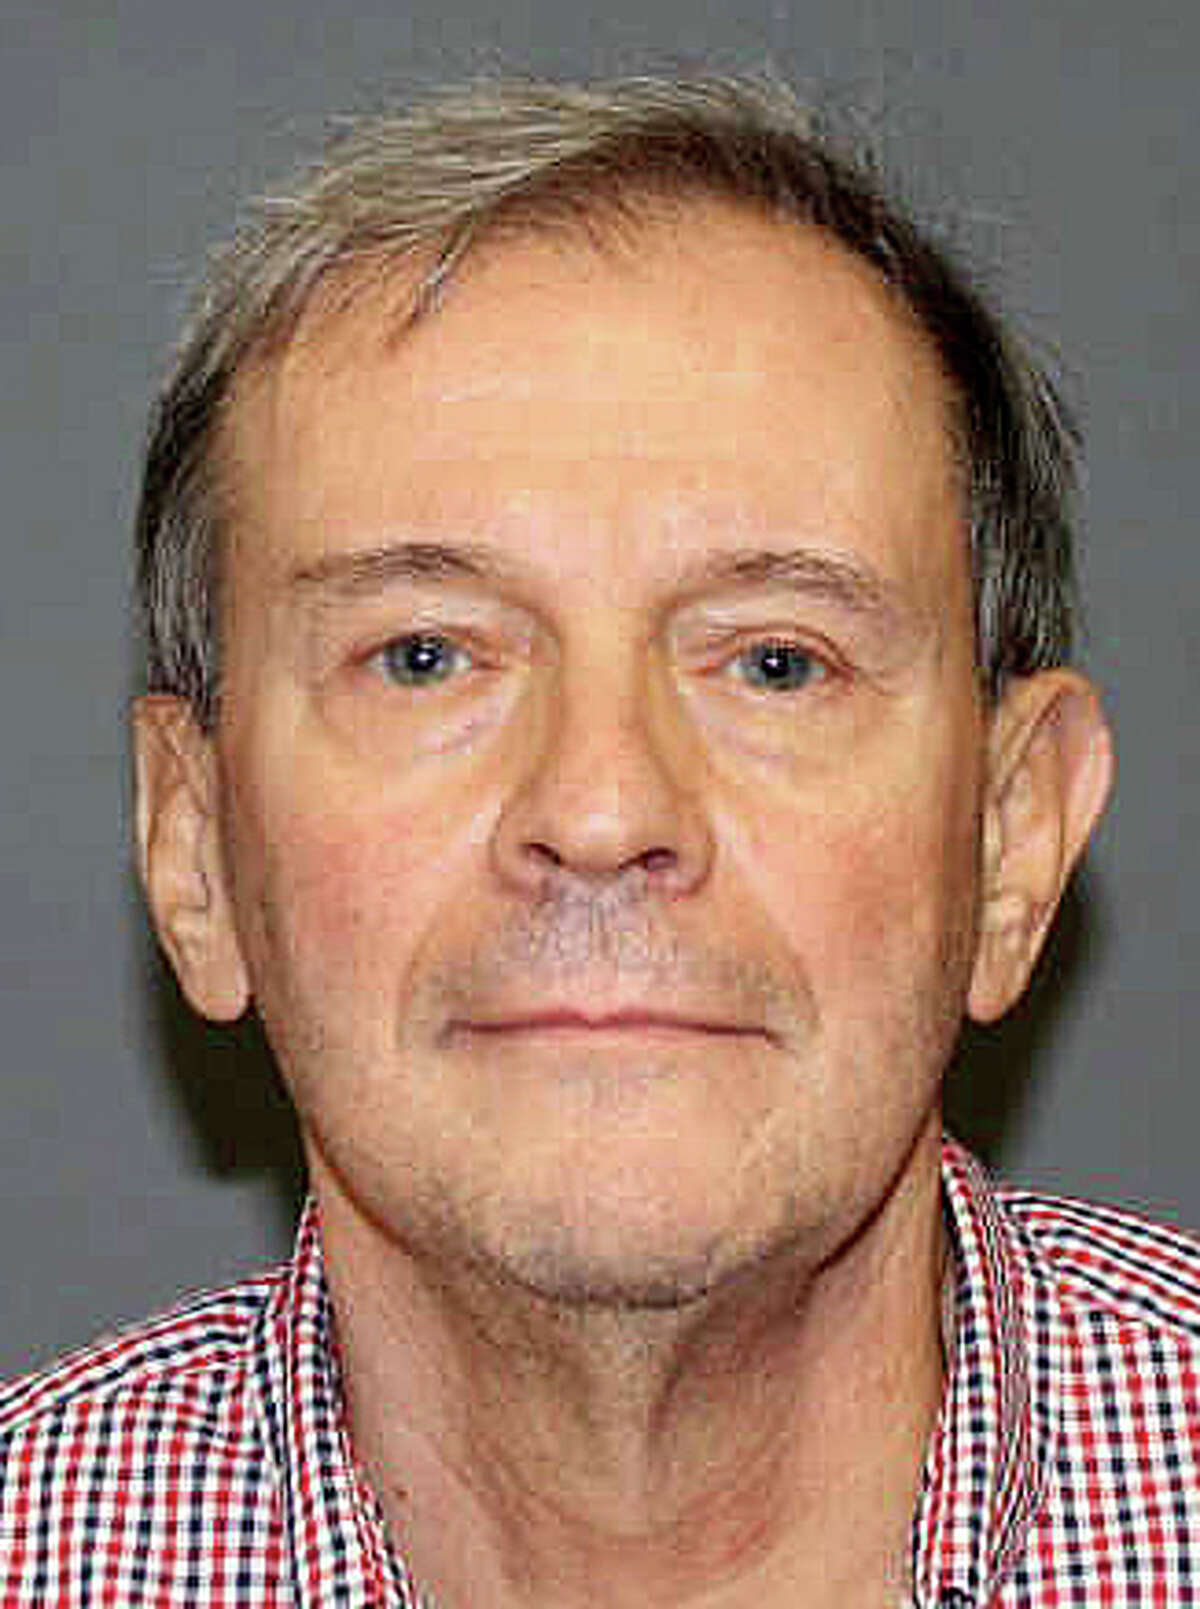 Joseph C. Callahan, 69, was charged Monday with 11 counts llegal possession of explosives and several other charges in connection with a hazmat incident last week at his 1625 Bronson Road property where police said they found a cache of potentially explosive materials as well as guns, ammunition and chemicals.